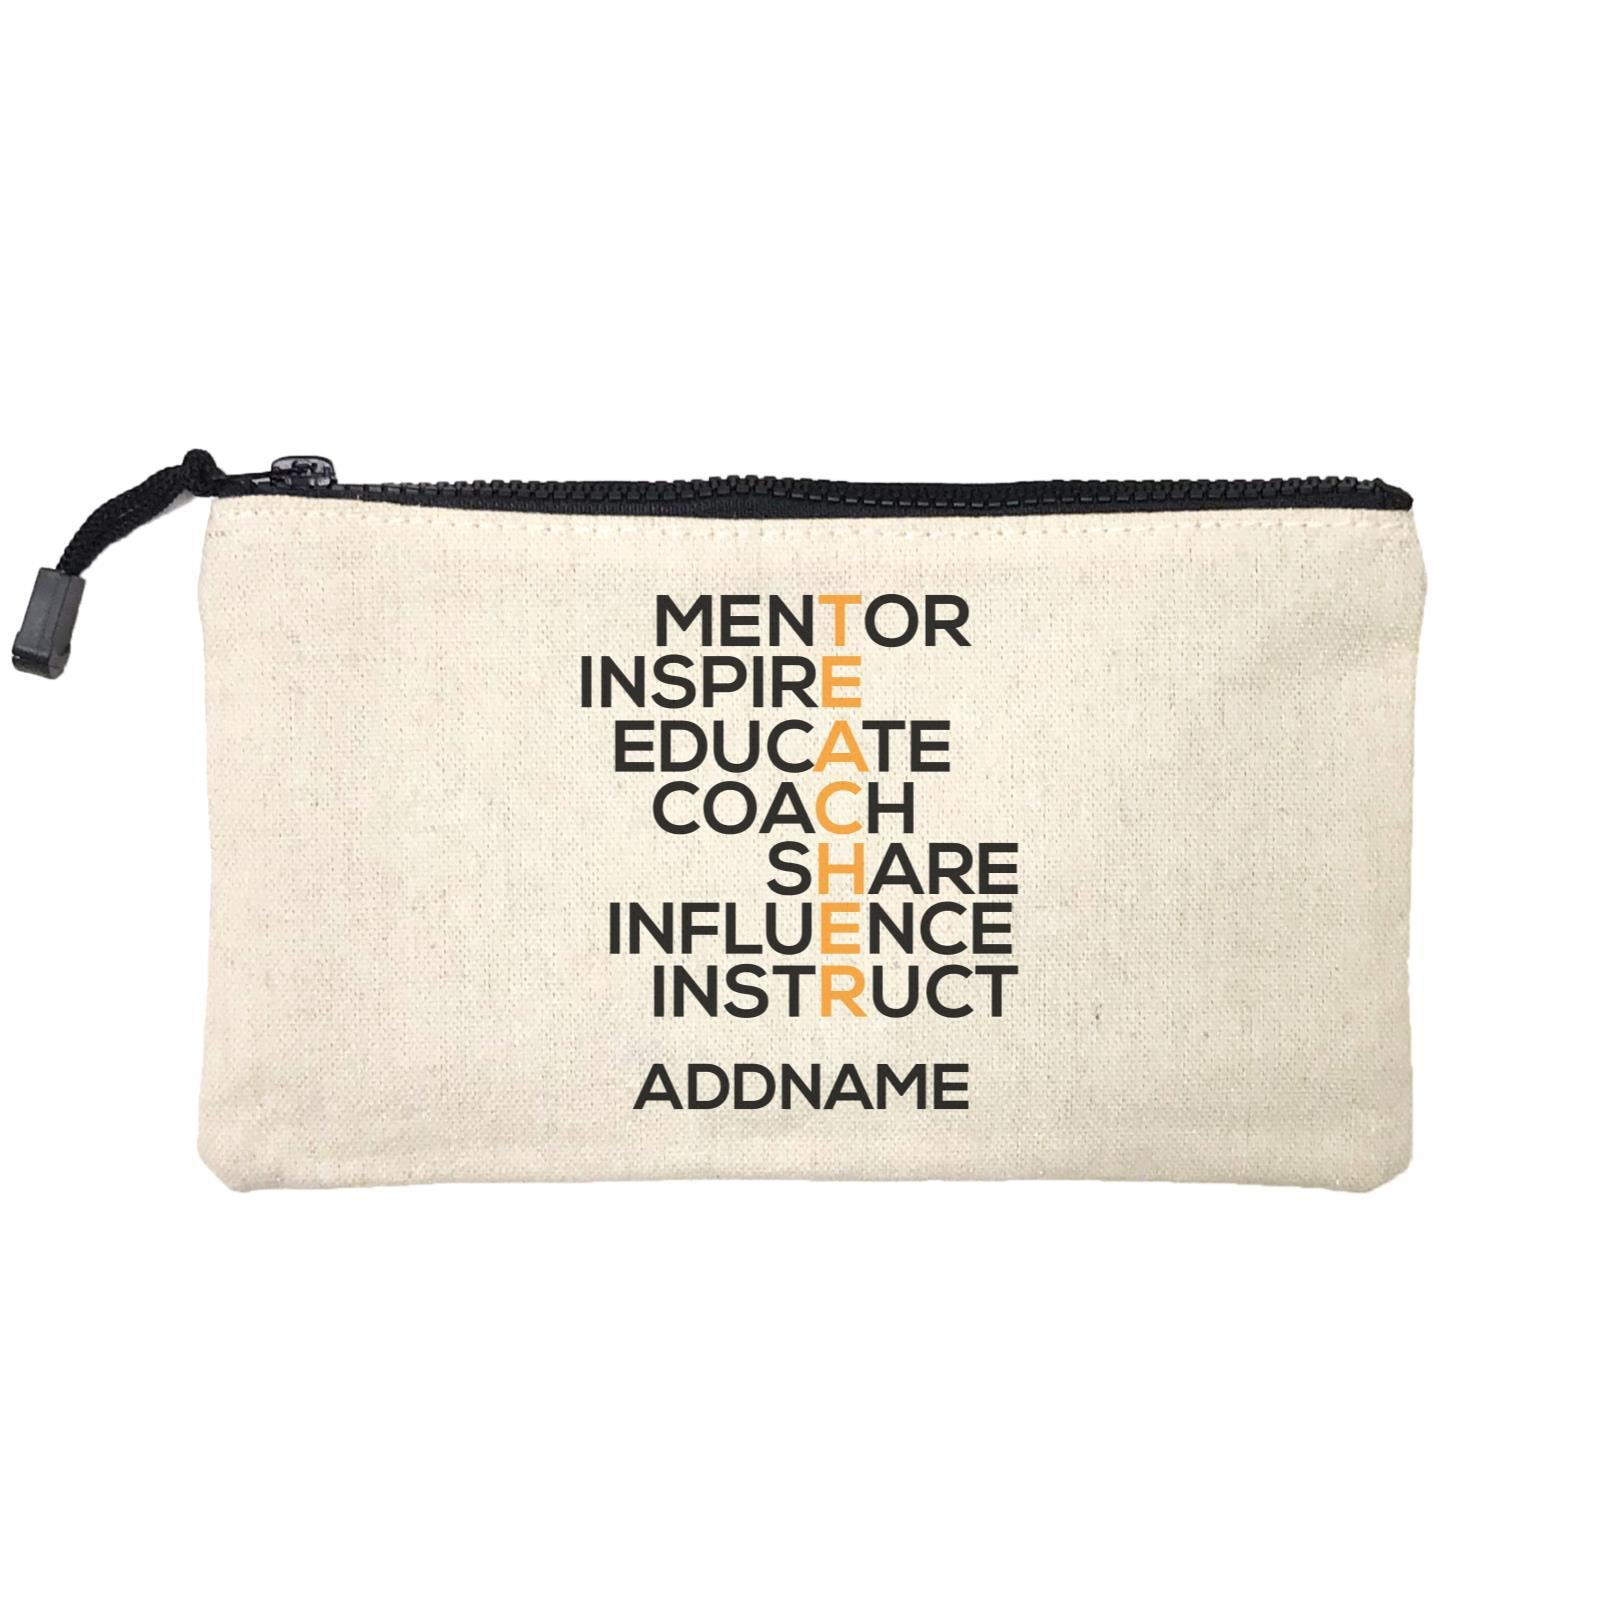 Teacher Quotes 2 Teacher Share Influence Instruct Addname Mini Accessories Stationery Pouch